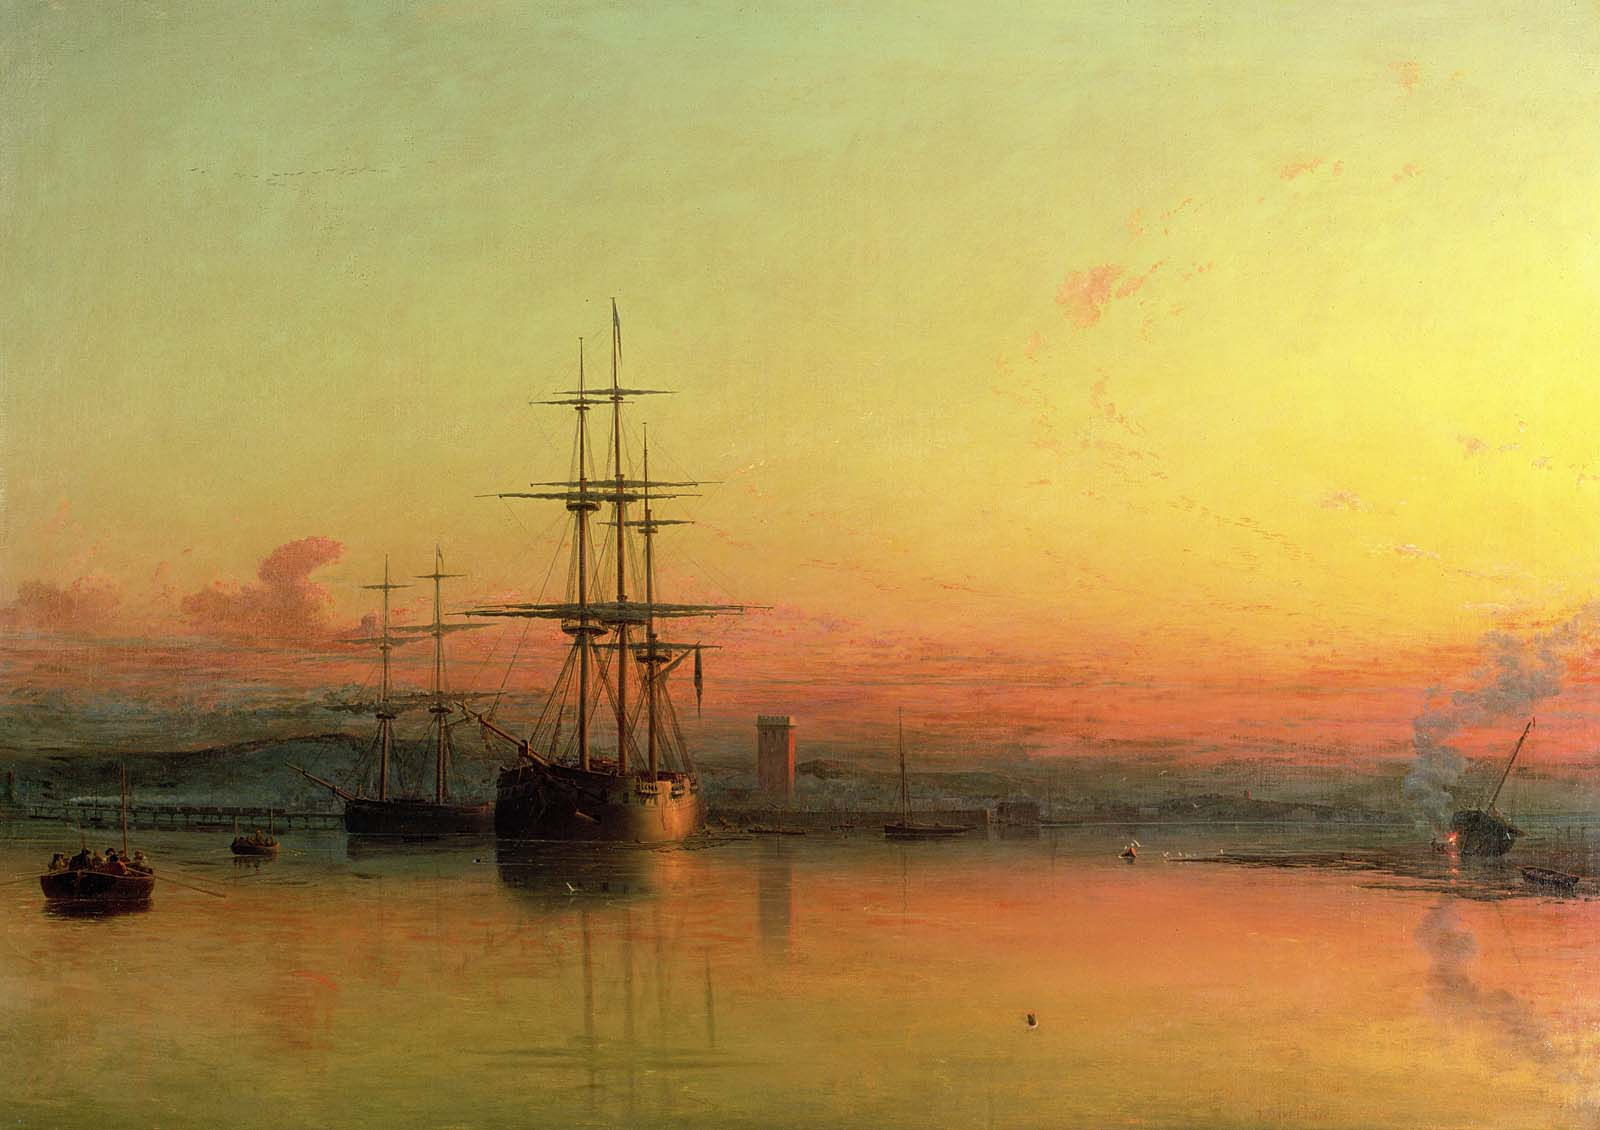 oil painitng of a ship in an estuary with a yellow and red sunset